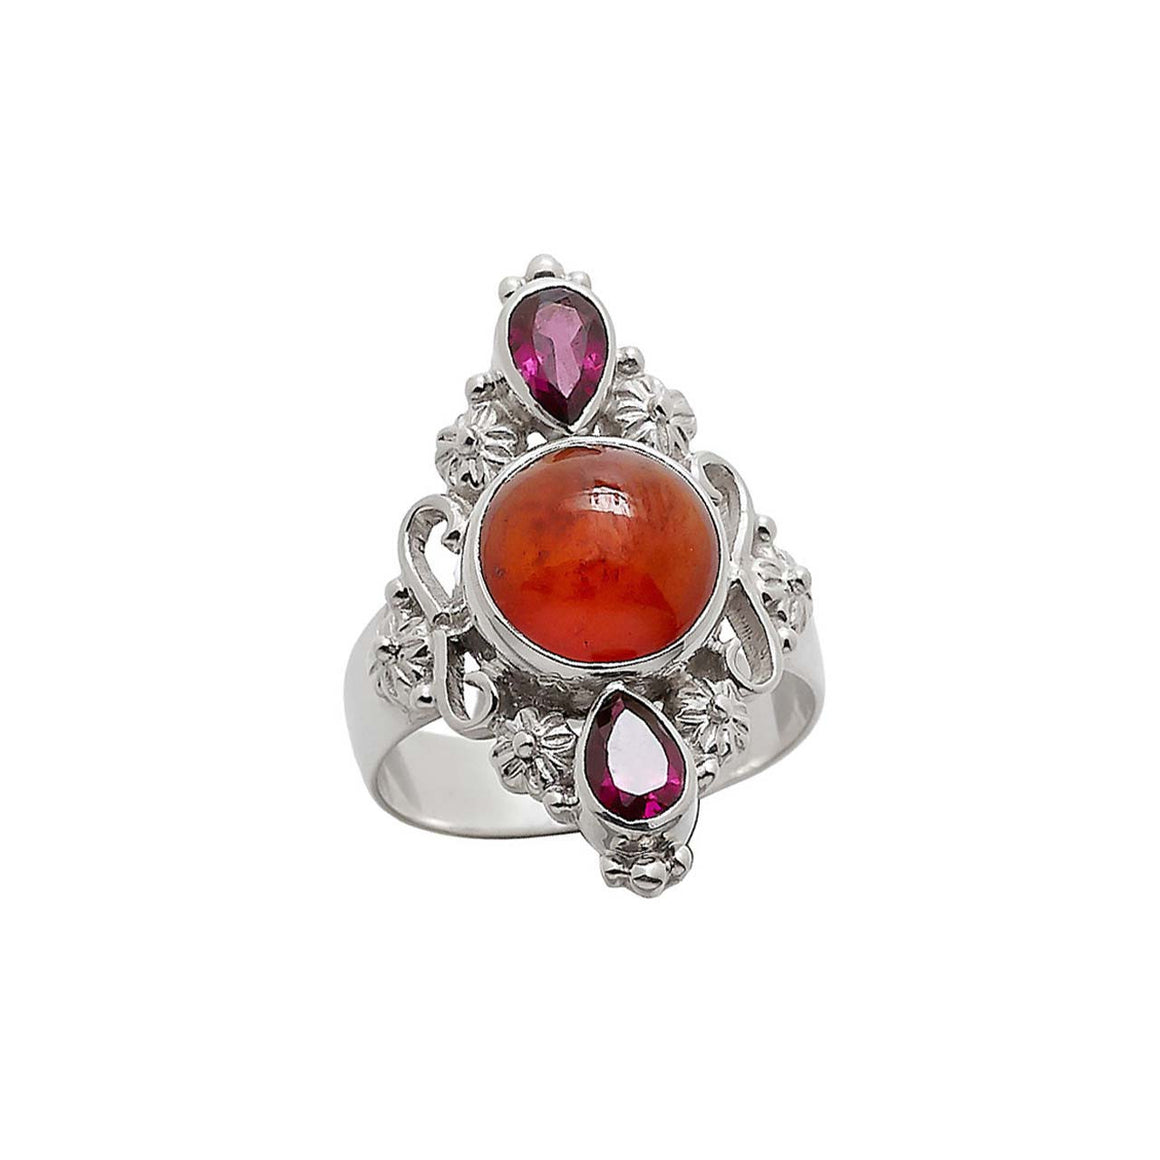 Hessonite and Rhodolite Garnet Ring